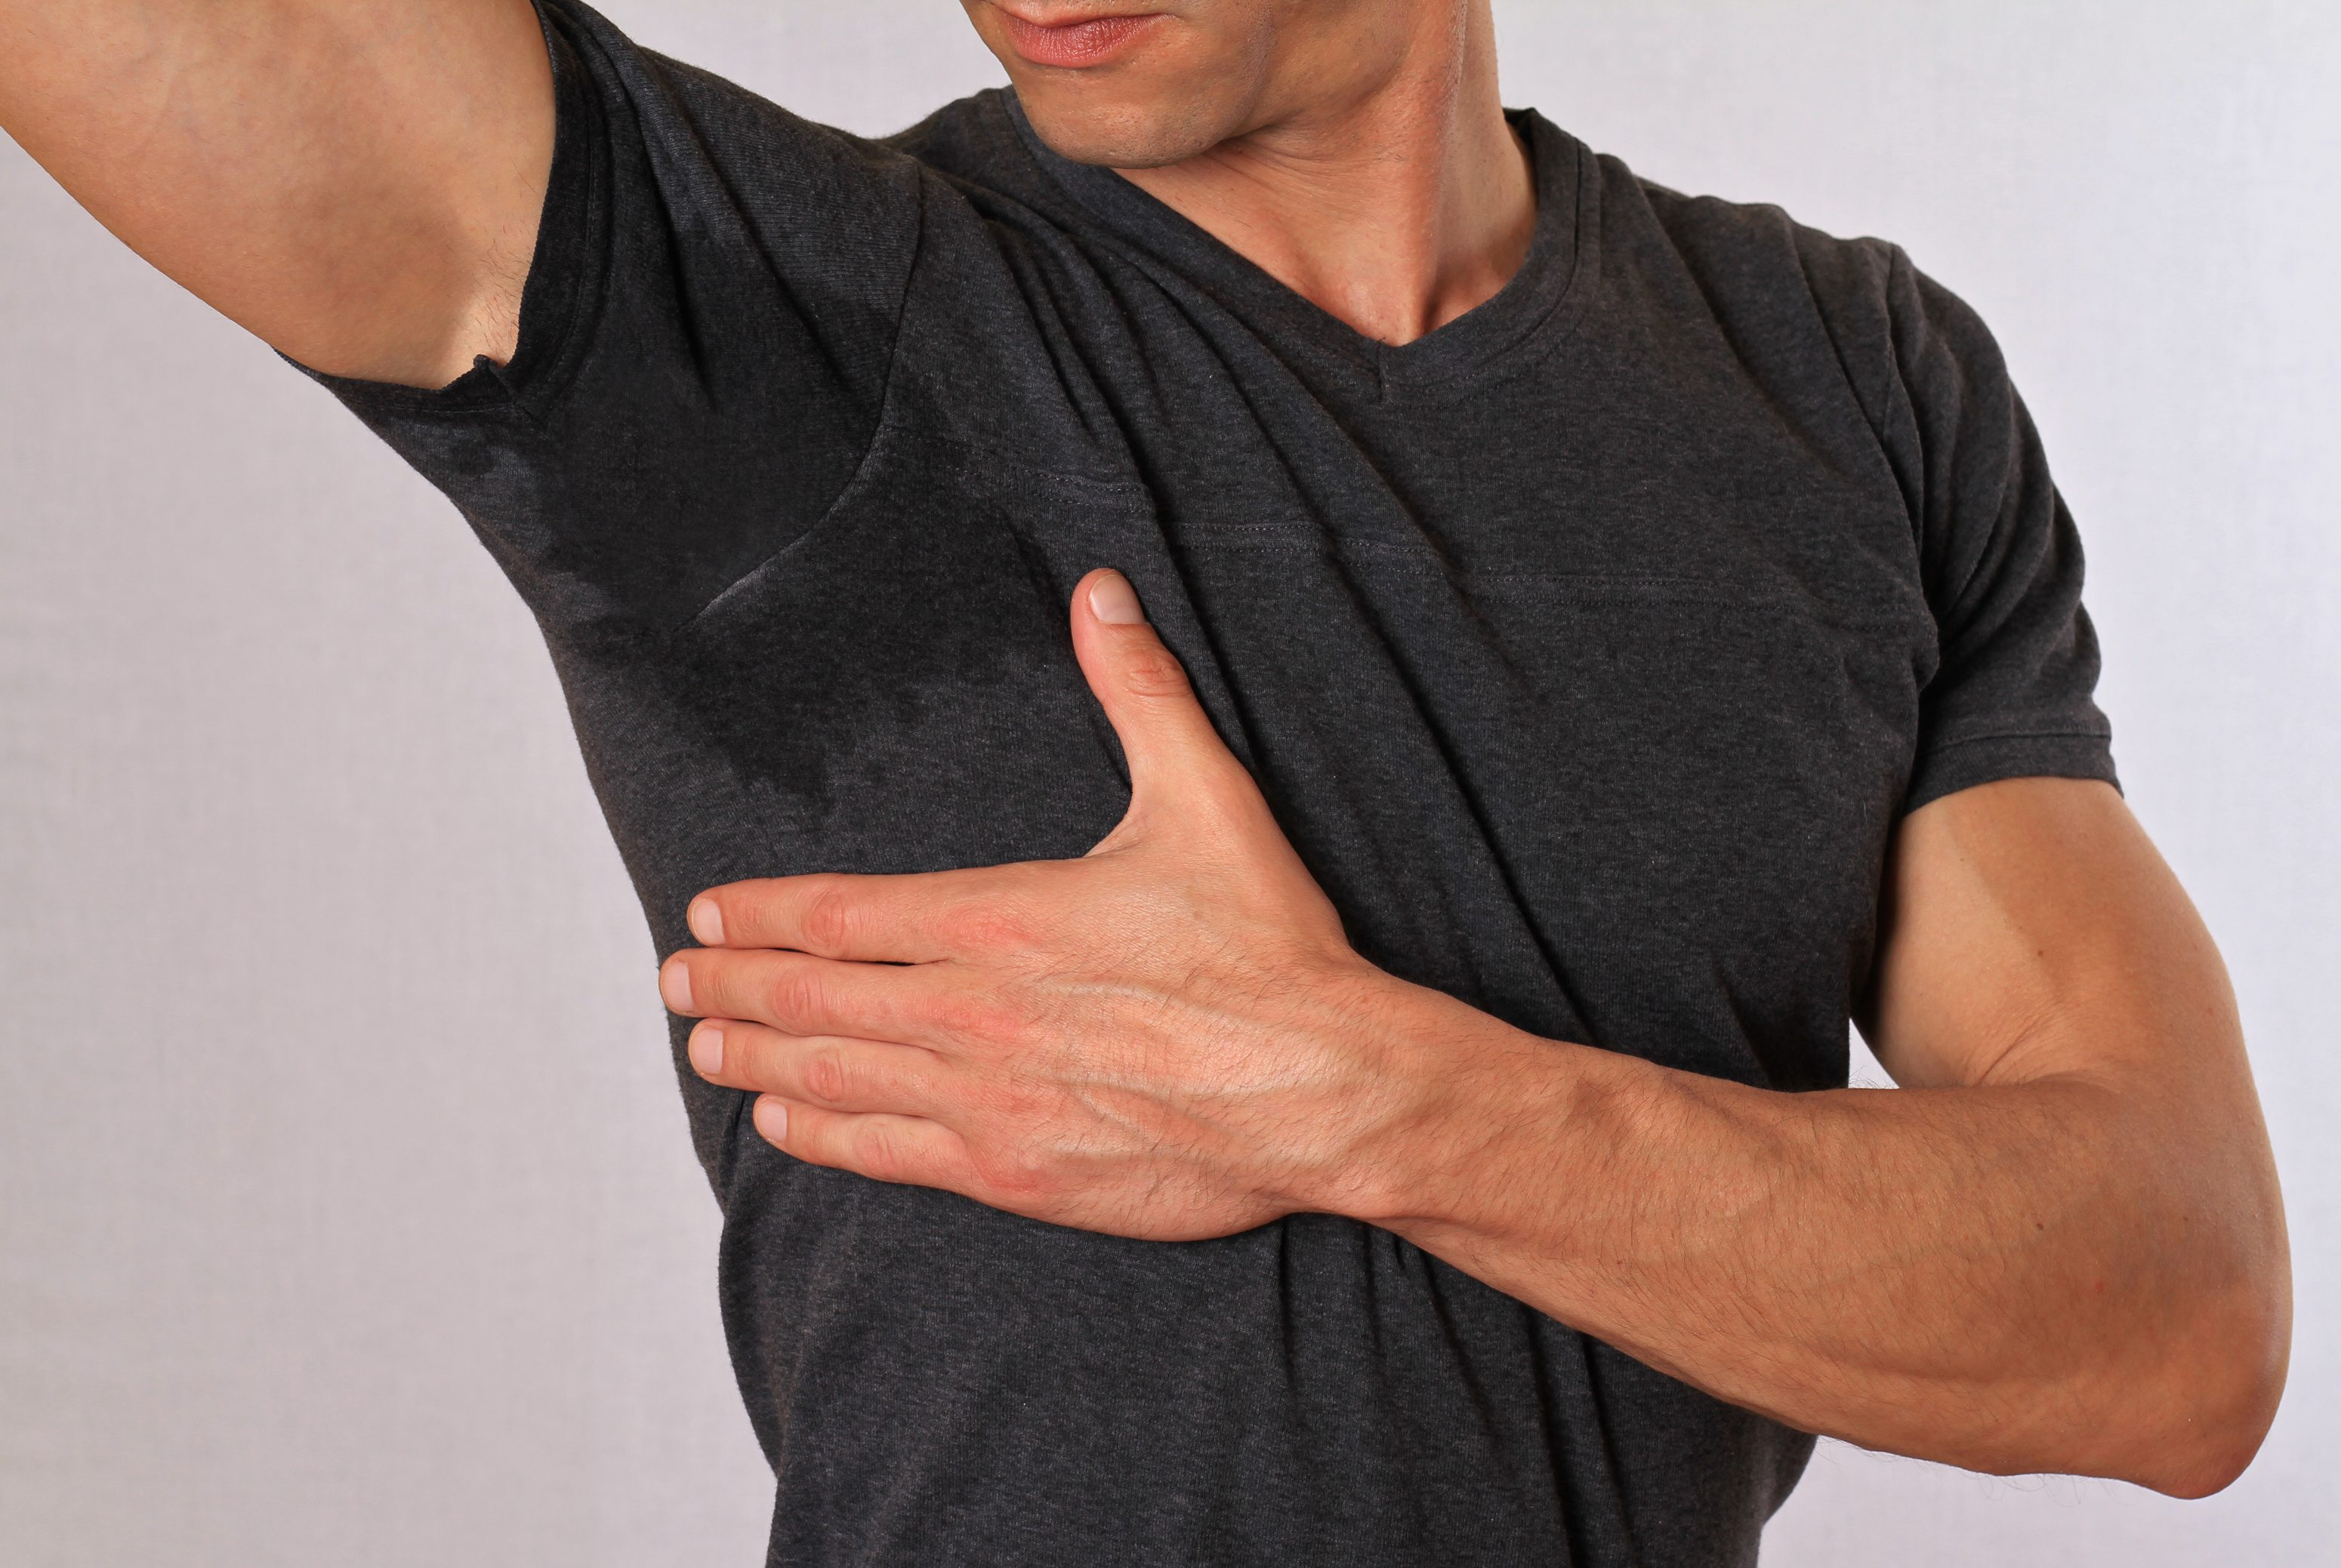 Hyperhidrosis (Excessive Sweating)